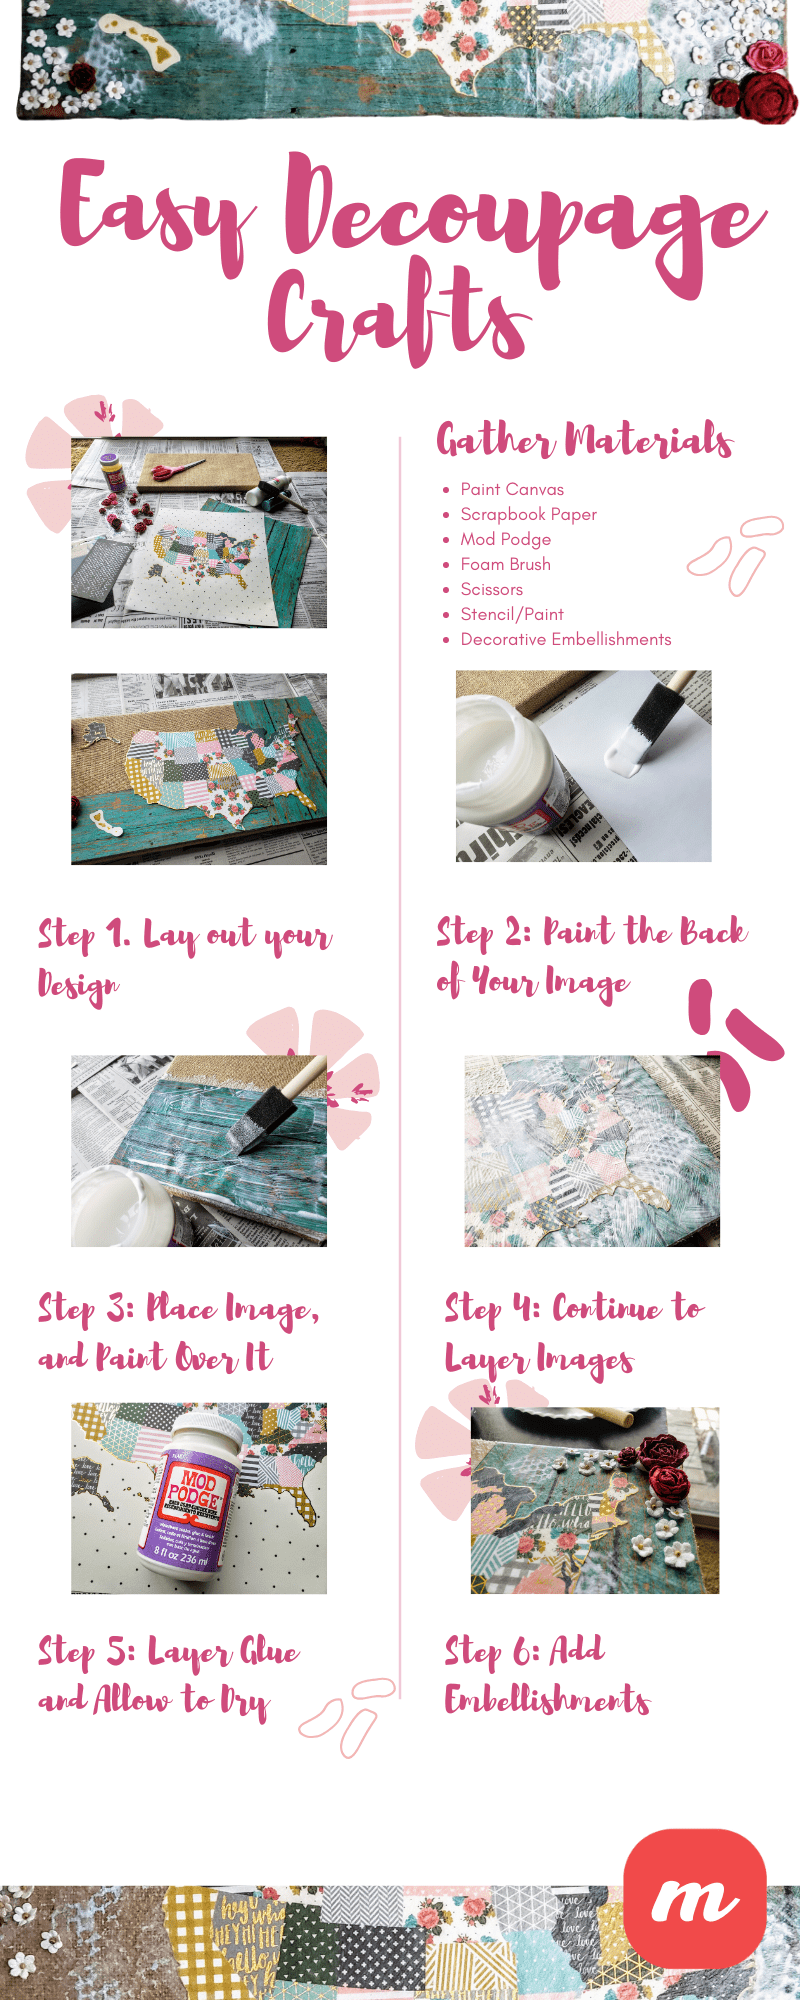 Easy Decoupage Crafts - Infographic